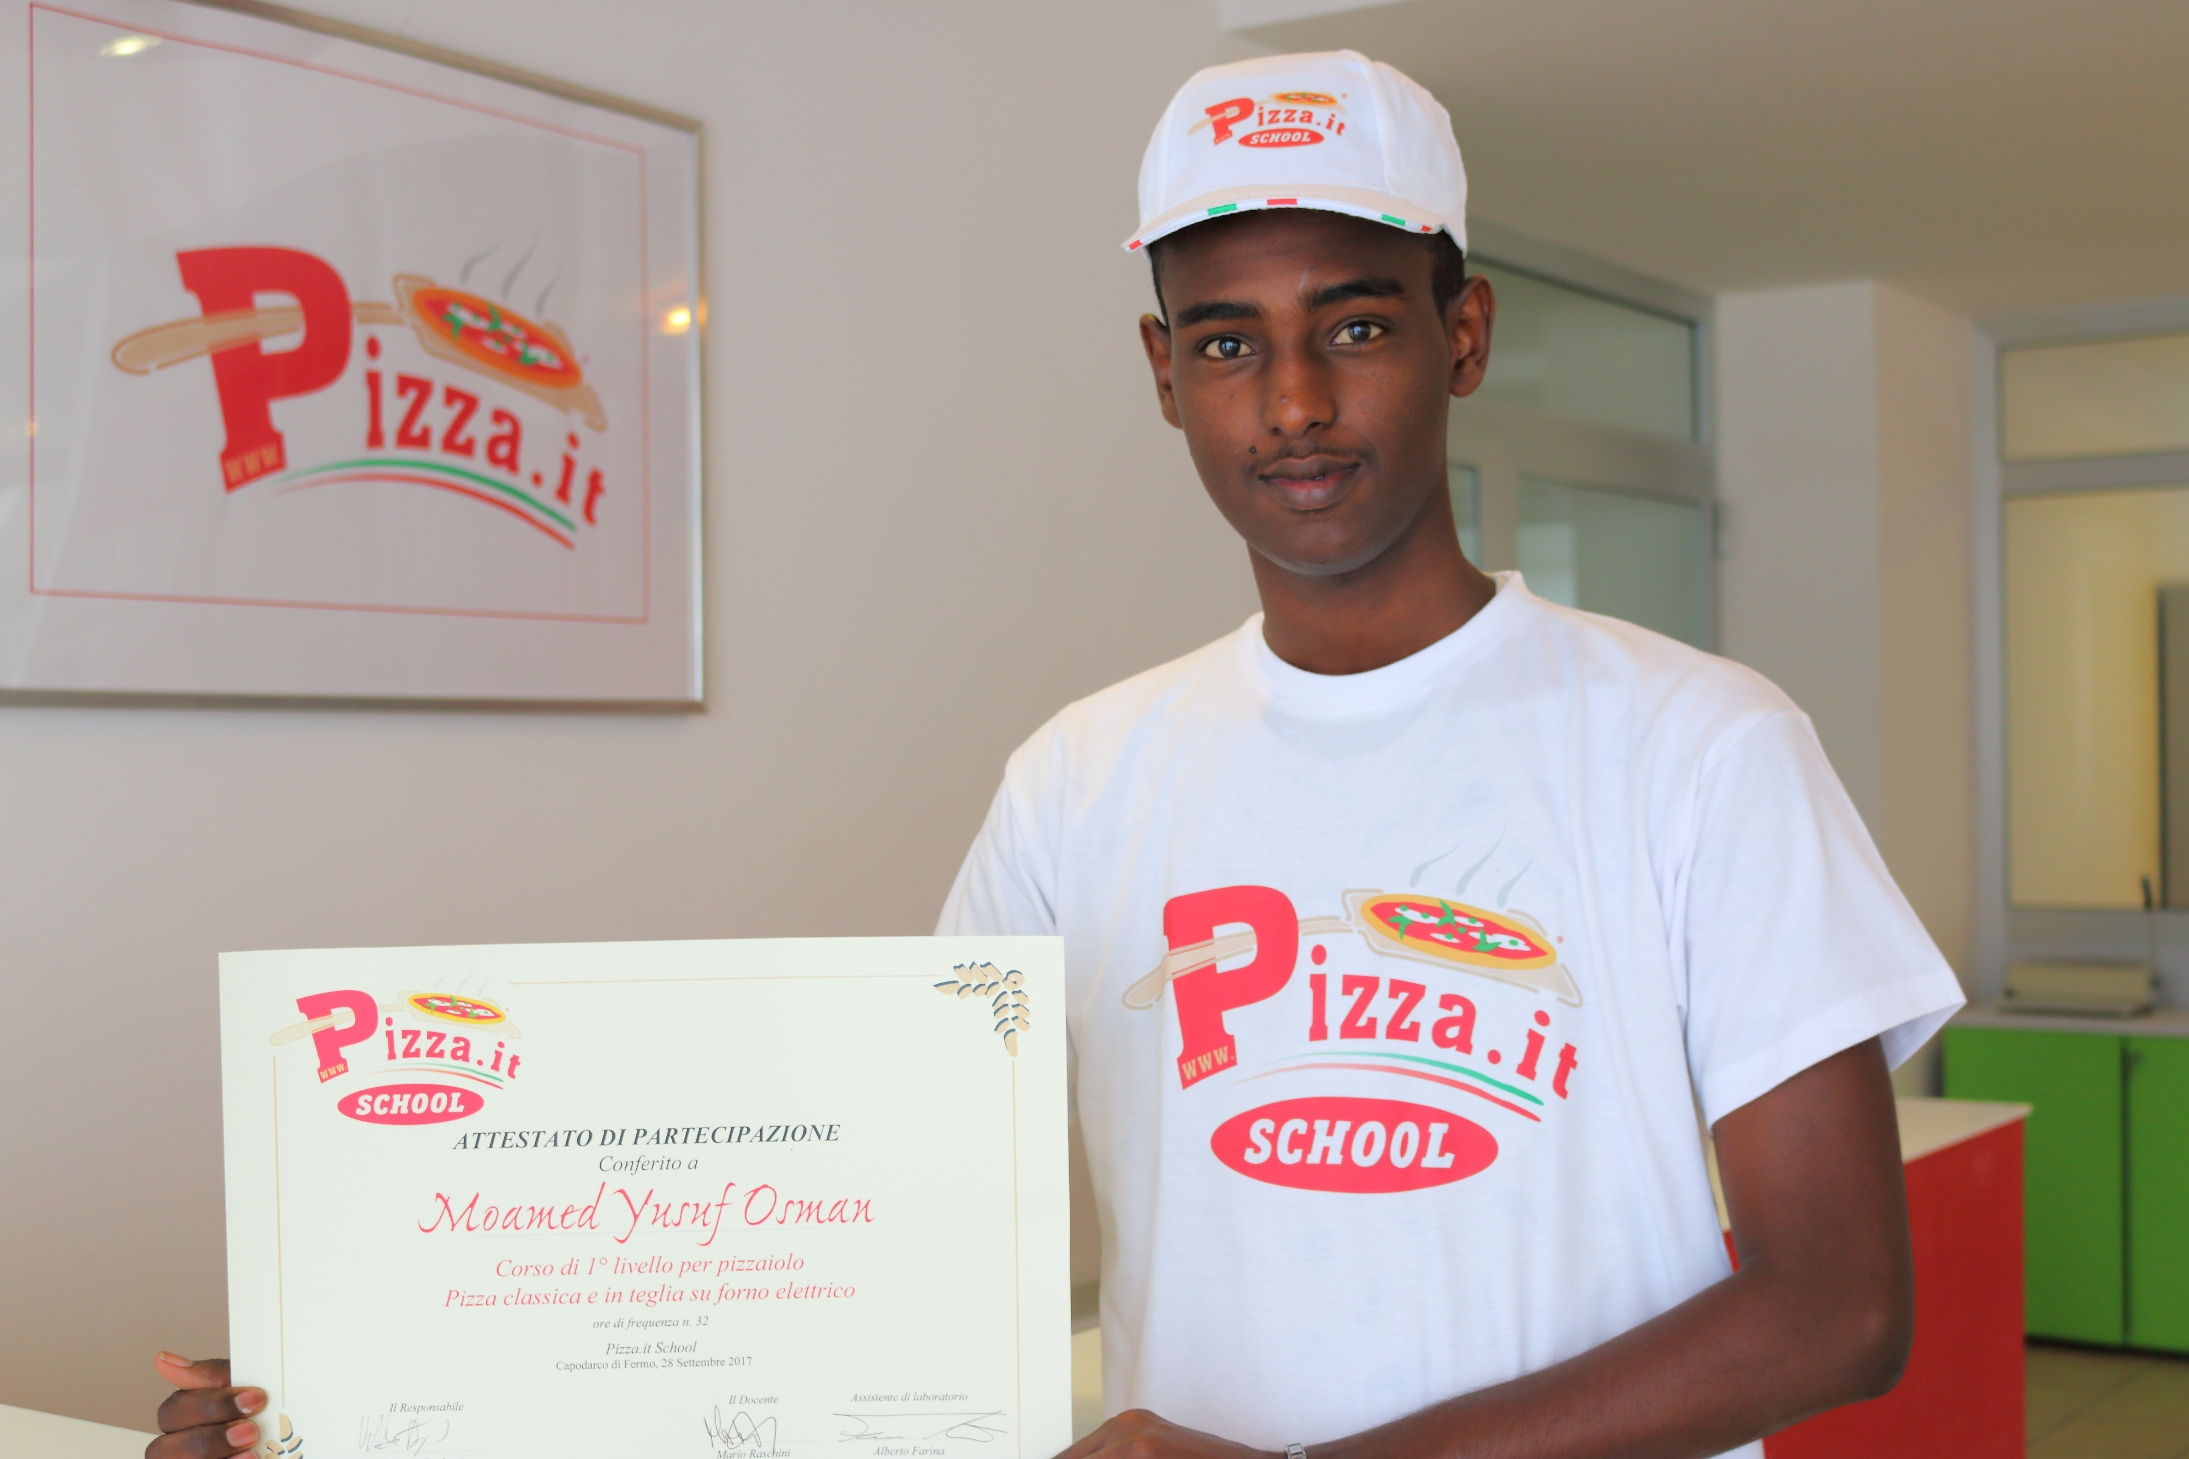 Moamed Yusuf Osman - Pizza.it School